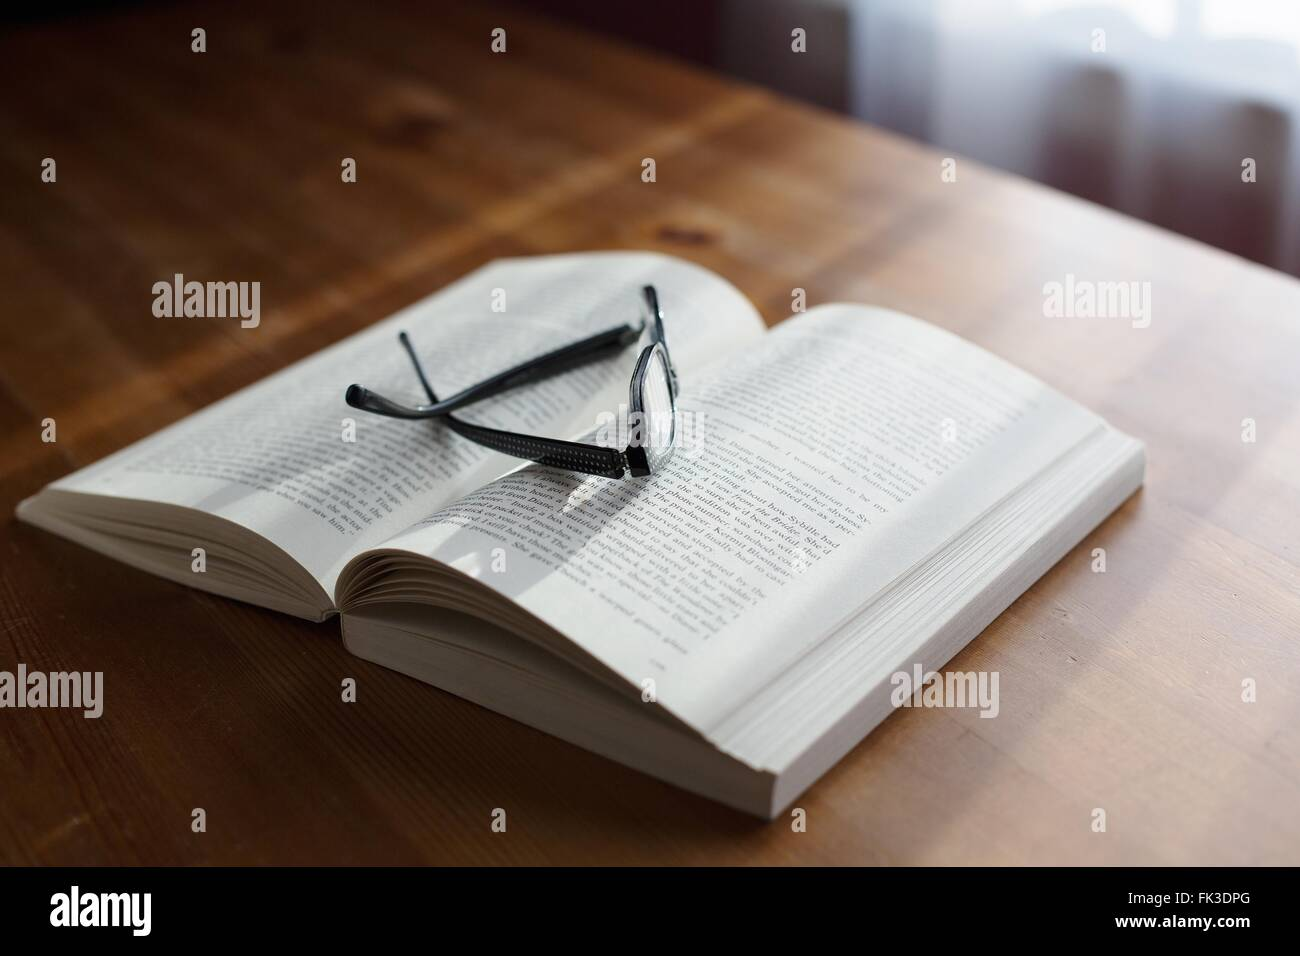 A pair of glasses on top of a book. Stock Photo